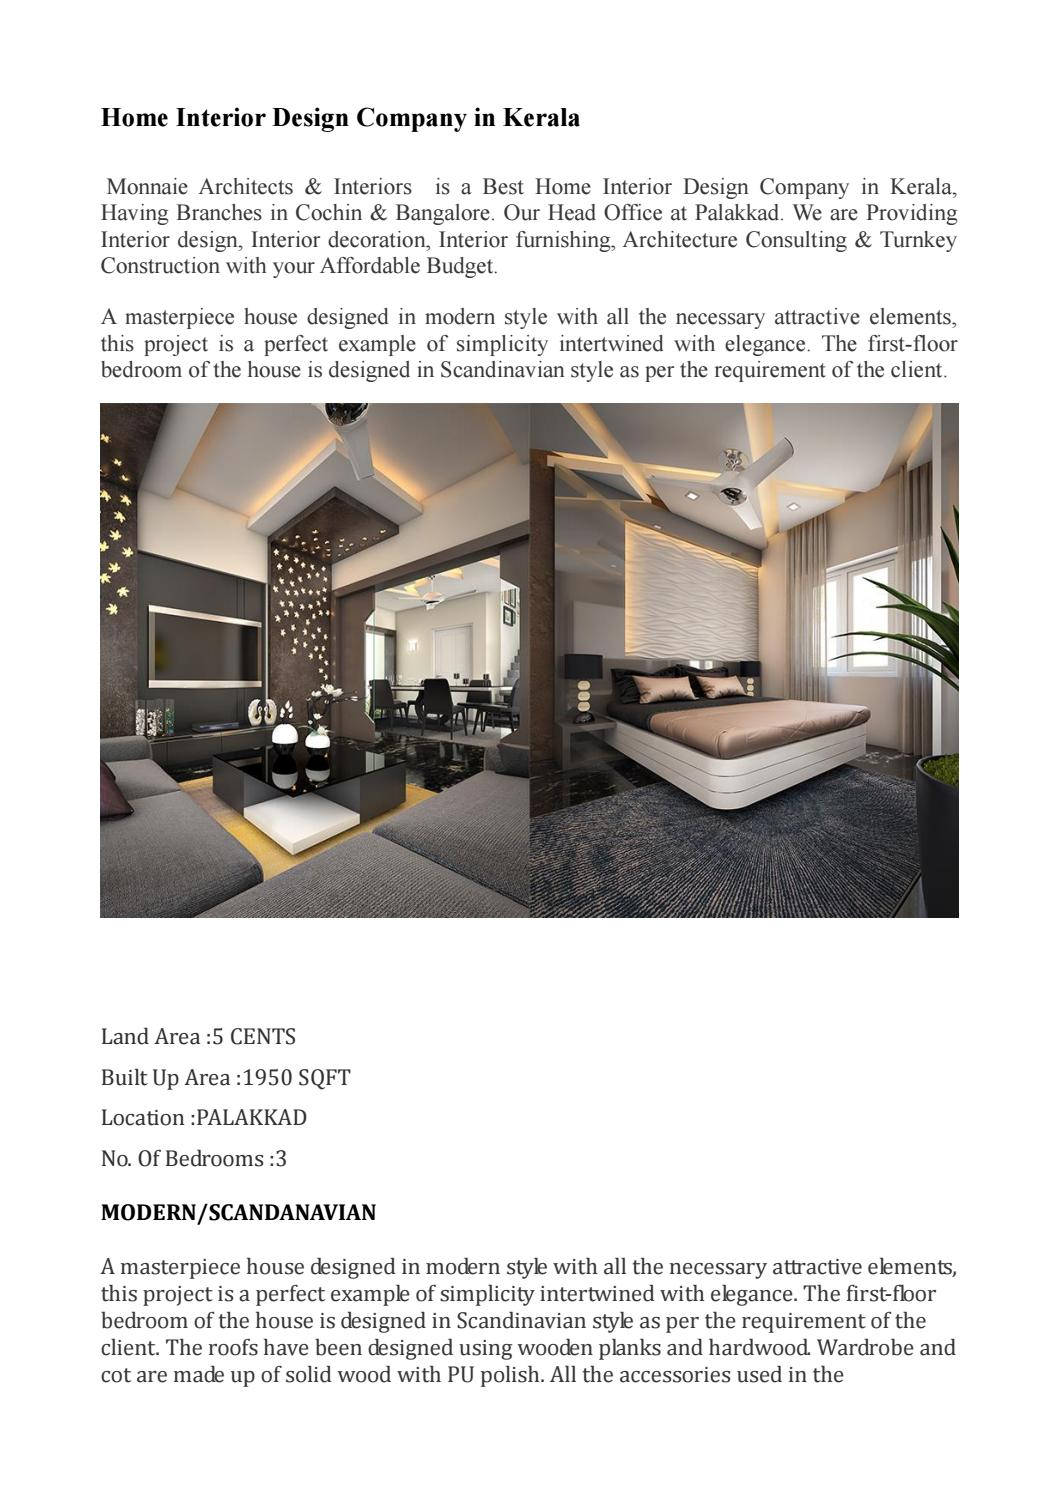 Home Interior Design Company In Kerala By Monnaie Offpage Issuu